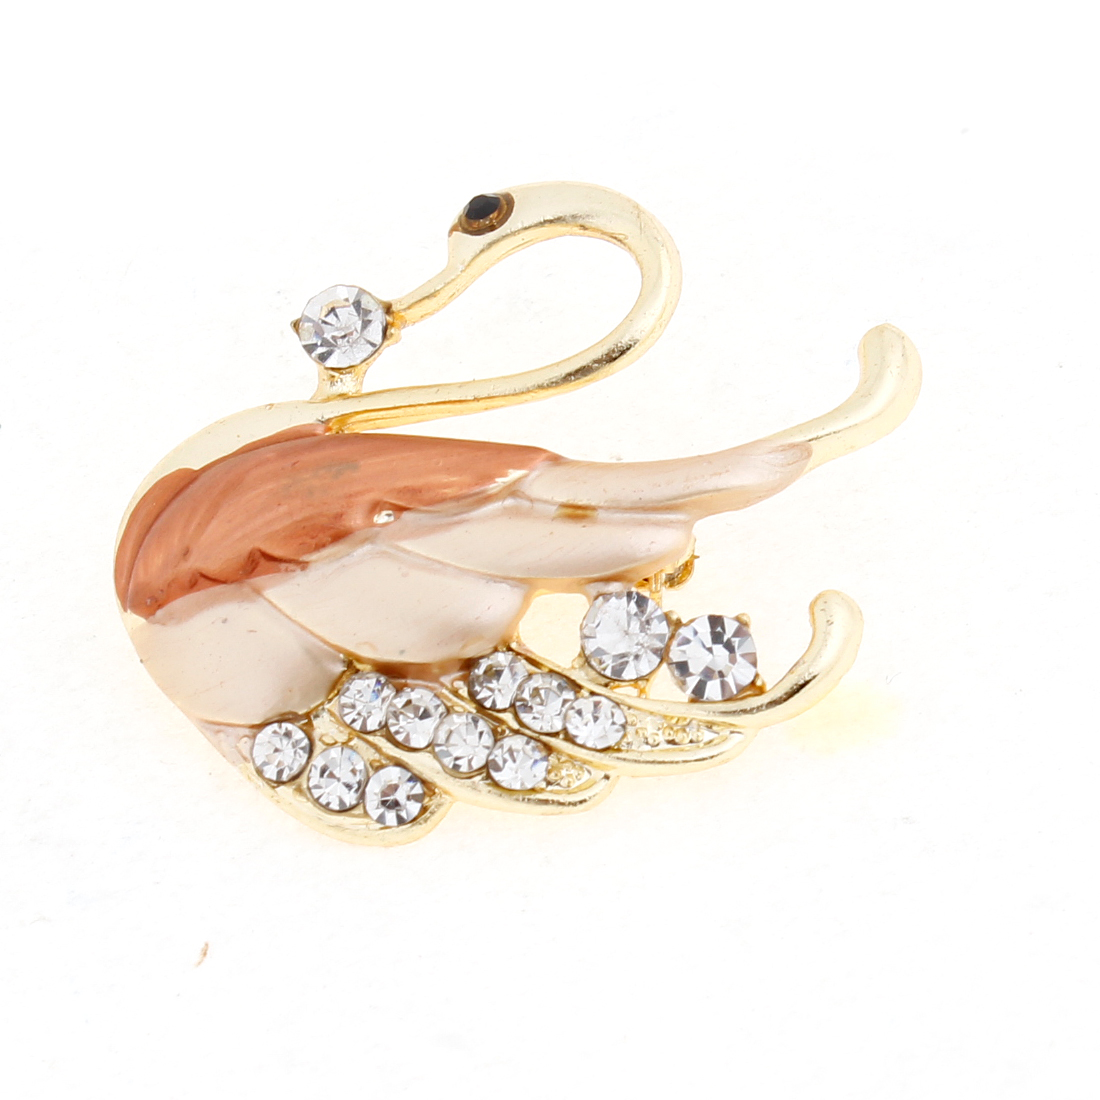 Shiny Rhinestone Embellished Orange Wing Swan Decor Brooch Breast Pin for Ladies